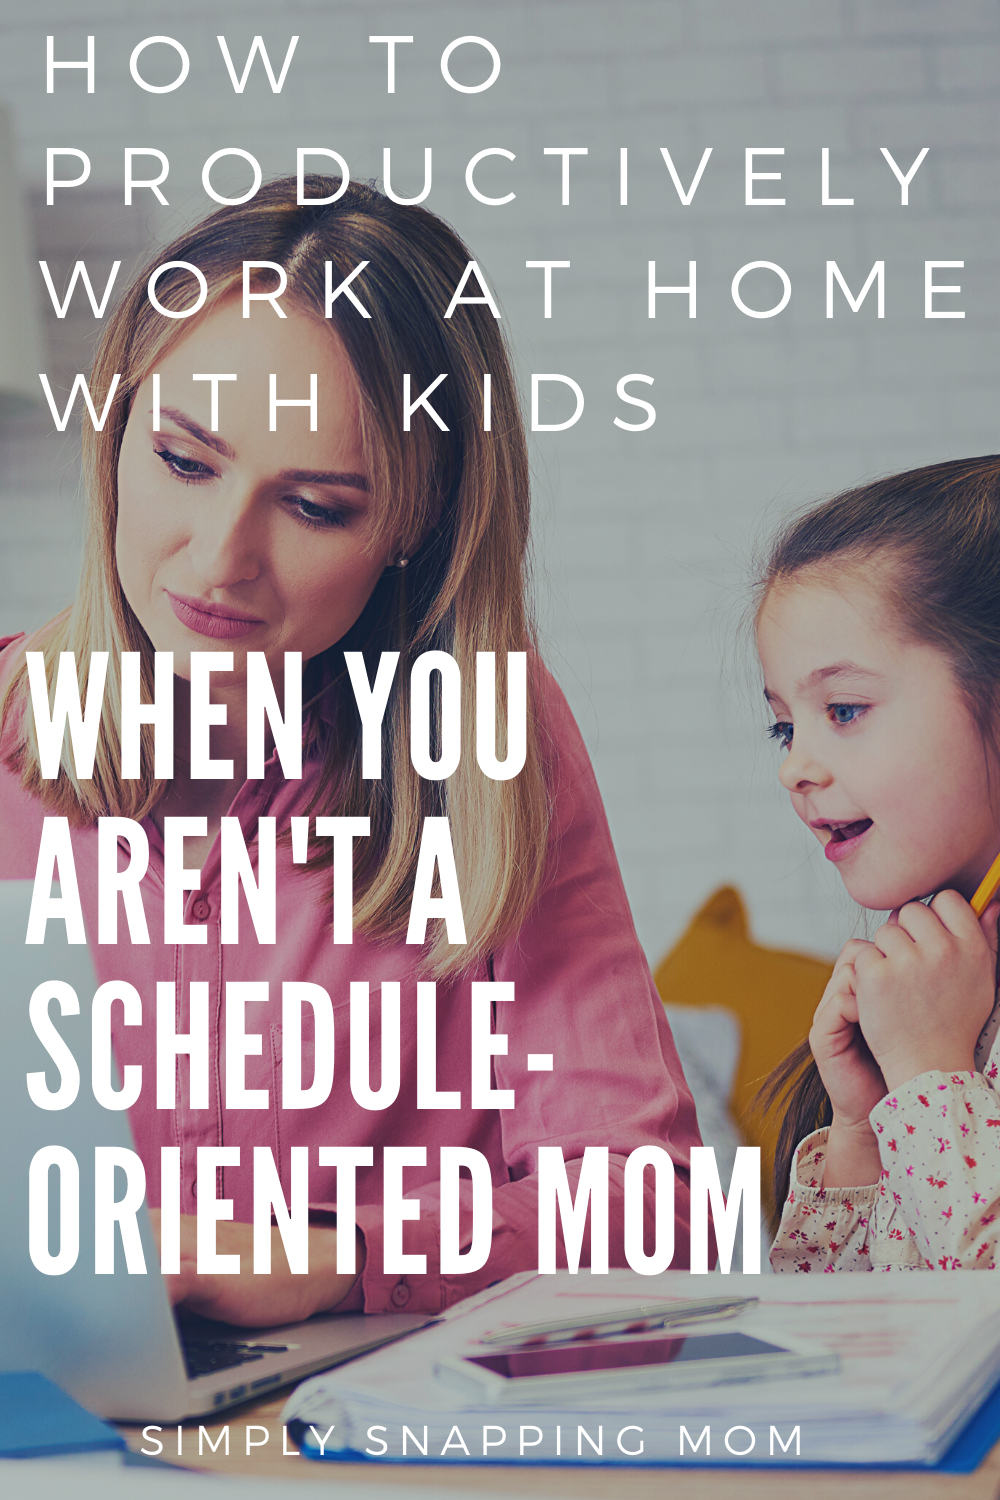 How to Productively Work at Home with Kids, When You Arent a Schedule-Oriented Mom –